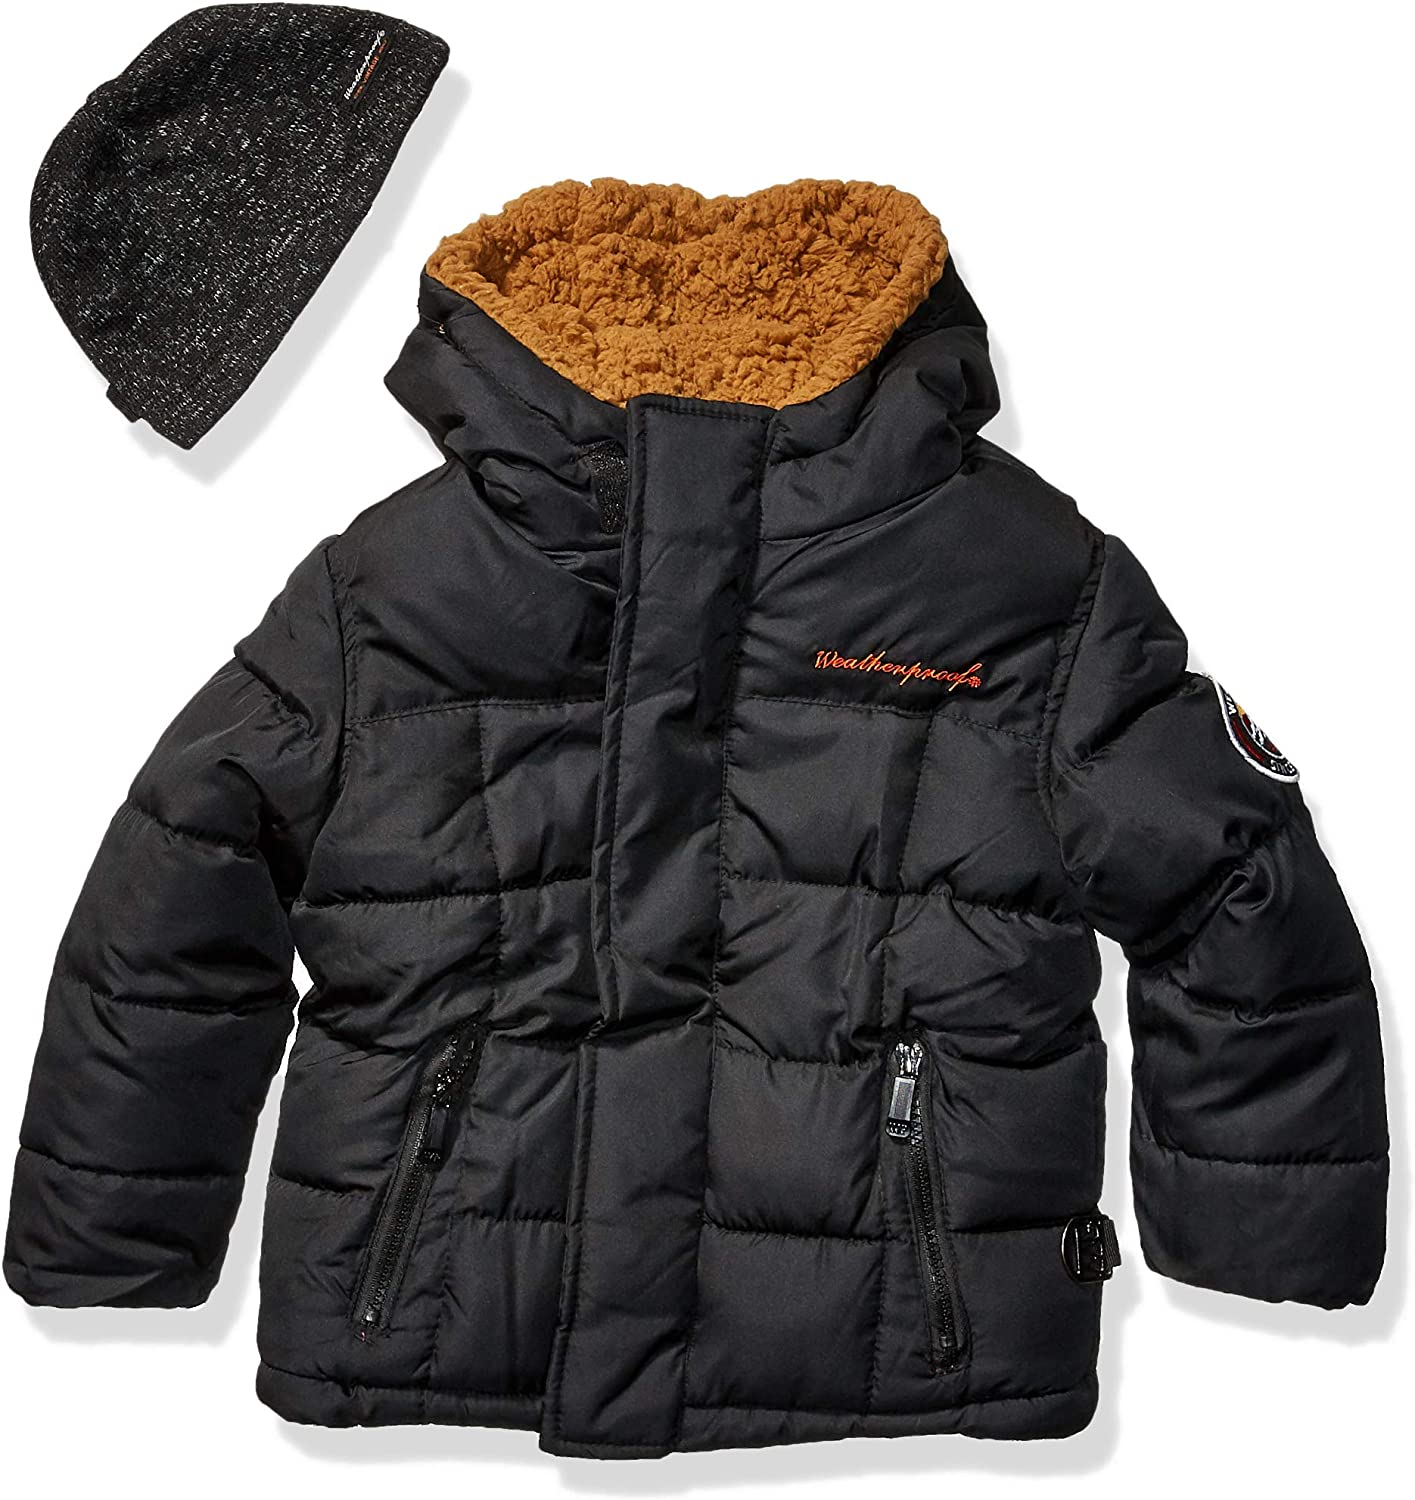 Very popular Weatherproof Boys' Outerwear Jacket More Elegant Available Styles